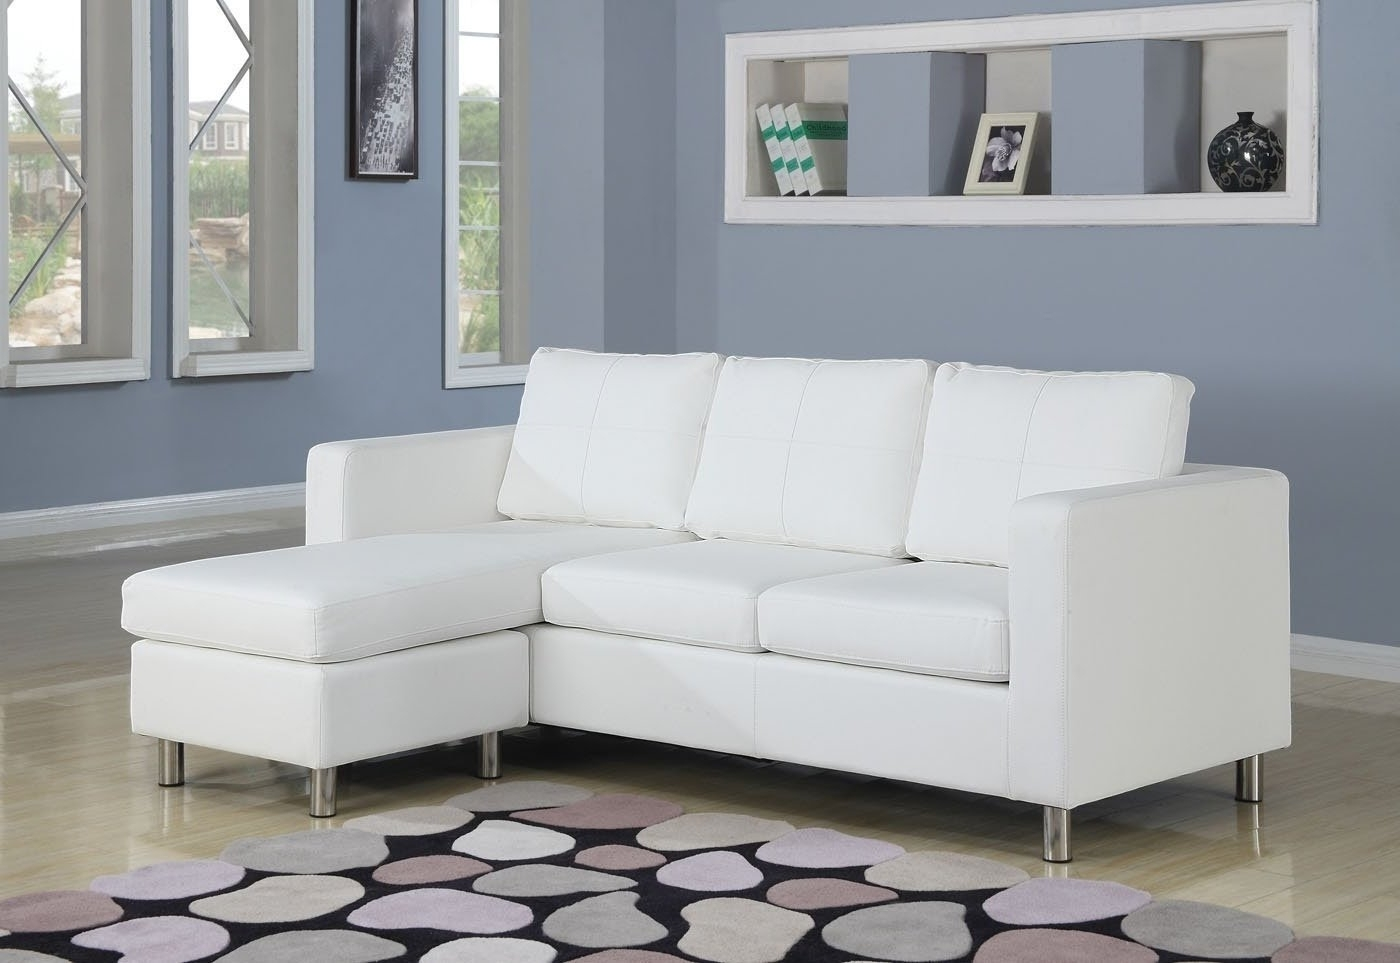 Furniture : Cb2 Sofa Warranty Sofa Chaise Longue Xxl Chaise Sofa In Newest Sectional Sofas In Hyderabad (View 6 of 20)